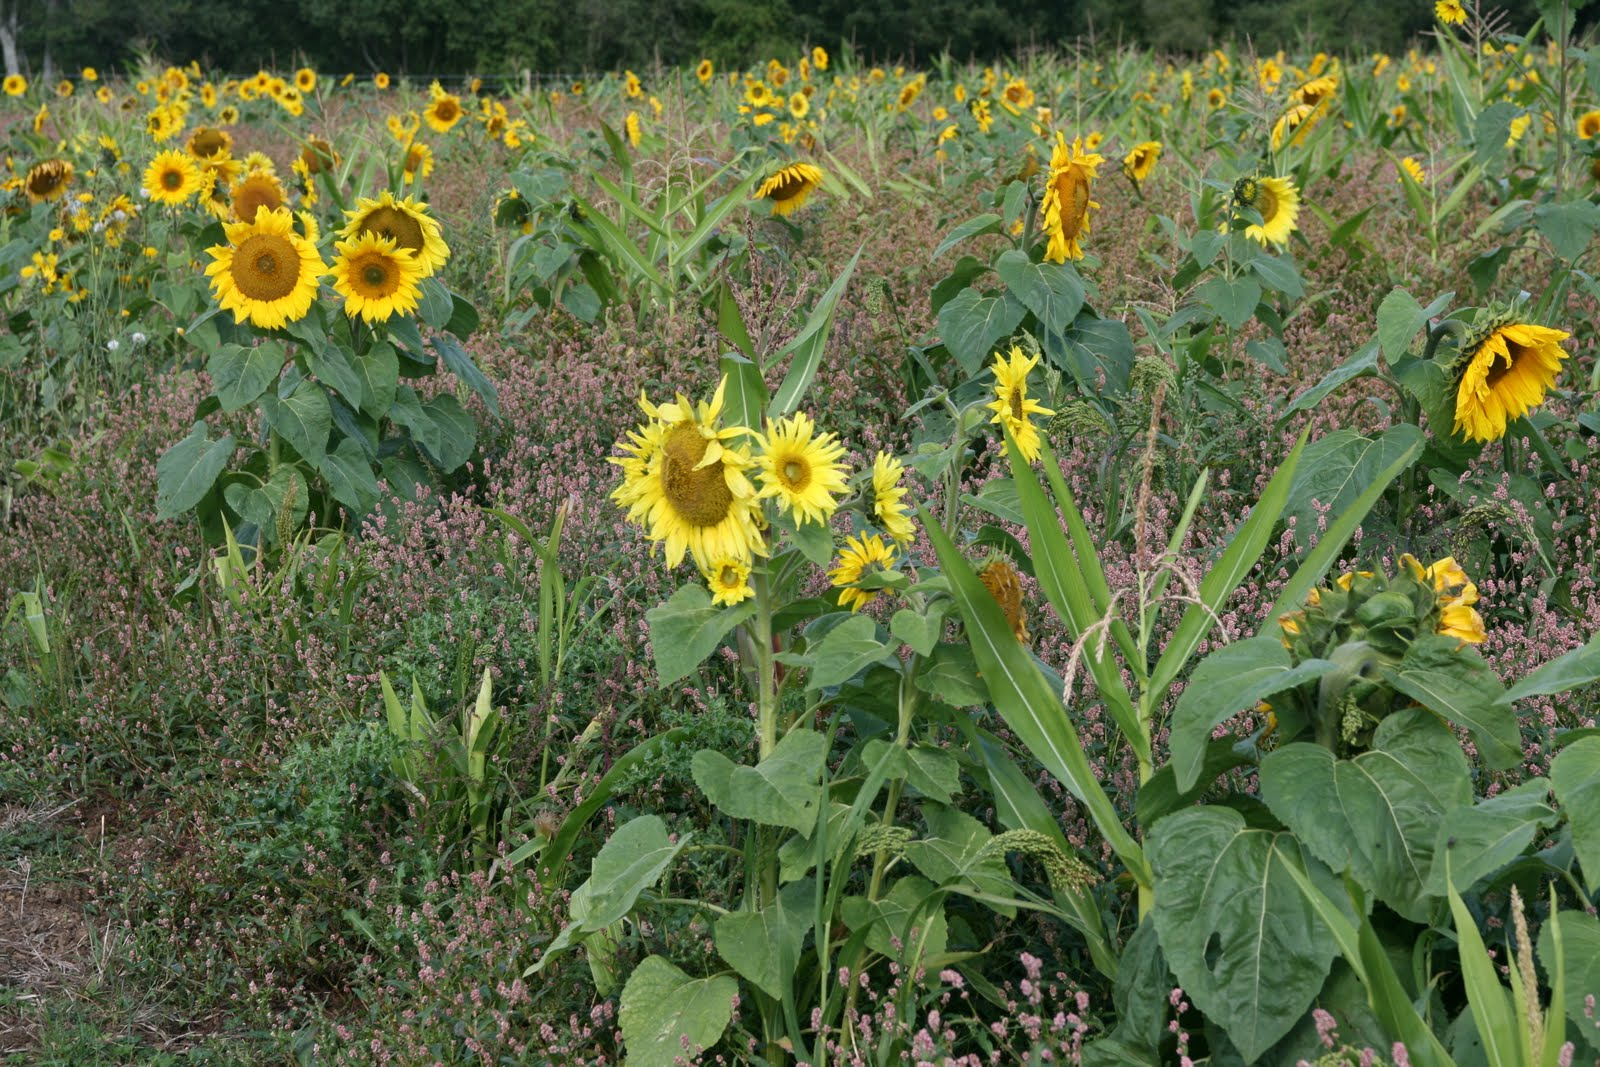 1008 070 Alton Circular, Hampshire, England Sunflowers